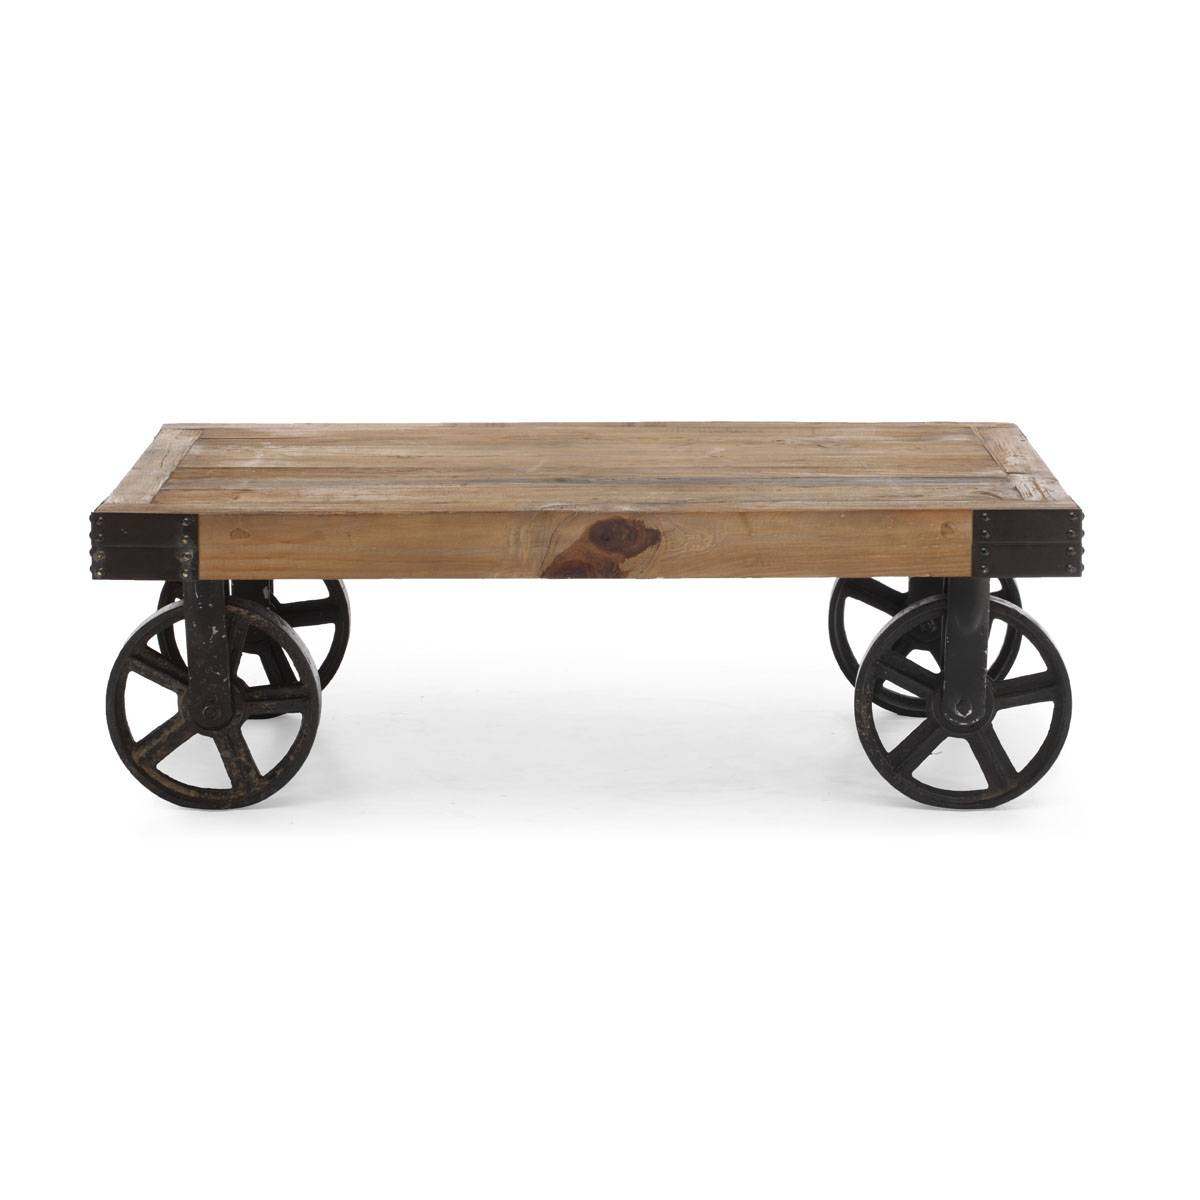 Rustic Coffee Table With Wheels – Rustic Coffee Table Pinterest throughout Wheels Coffee Tables (Image 25 of 30)